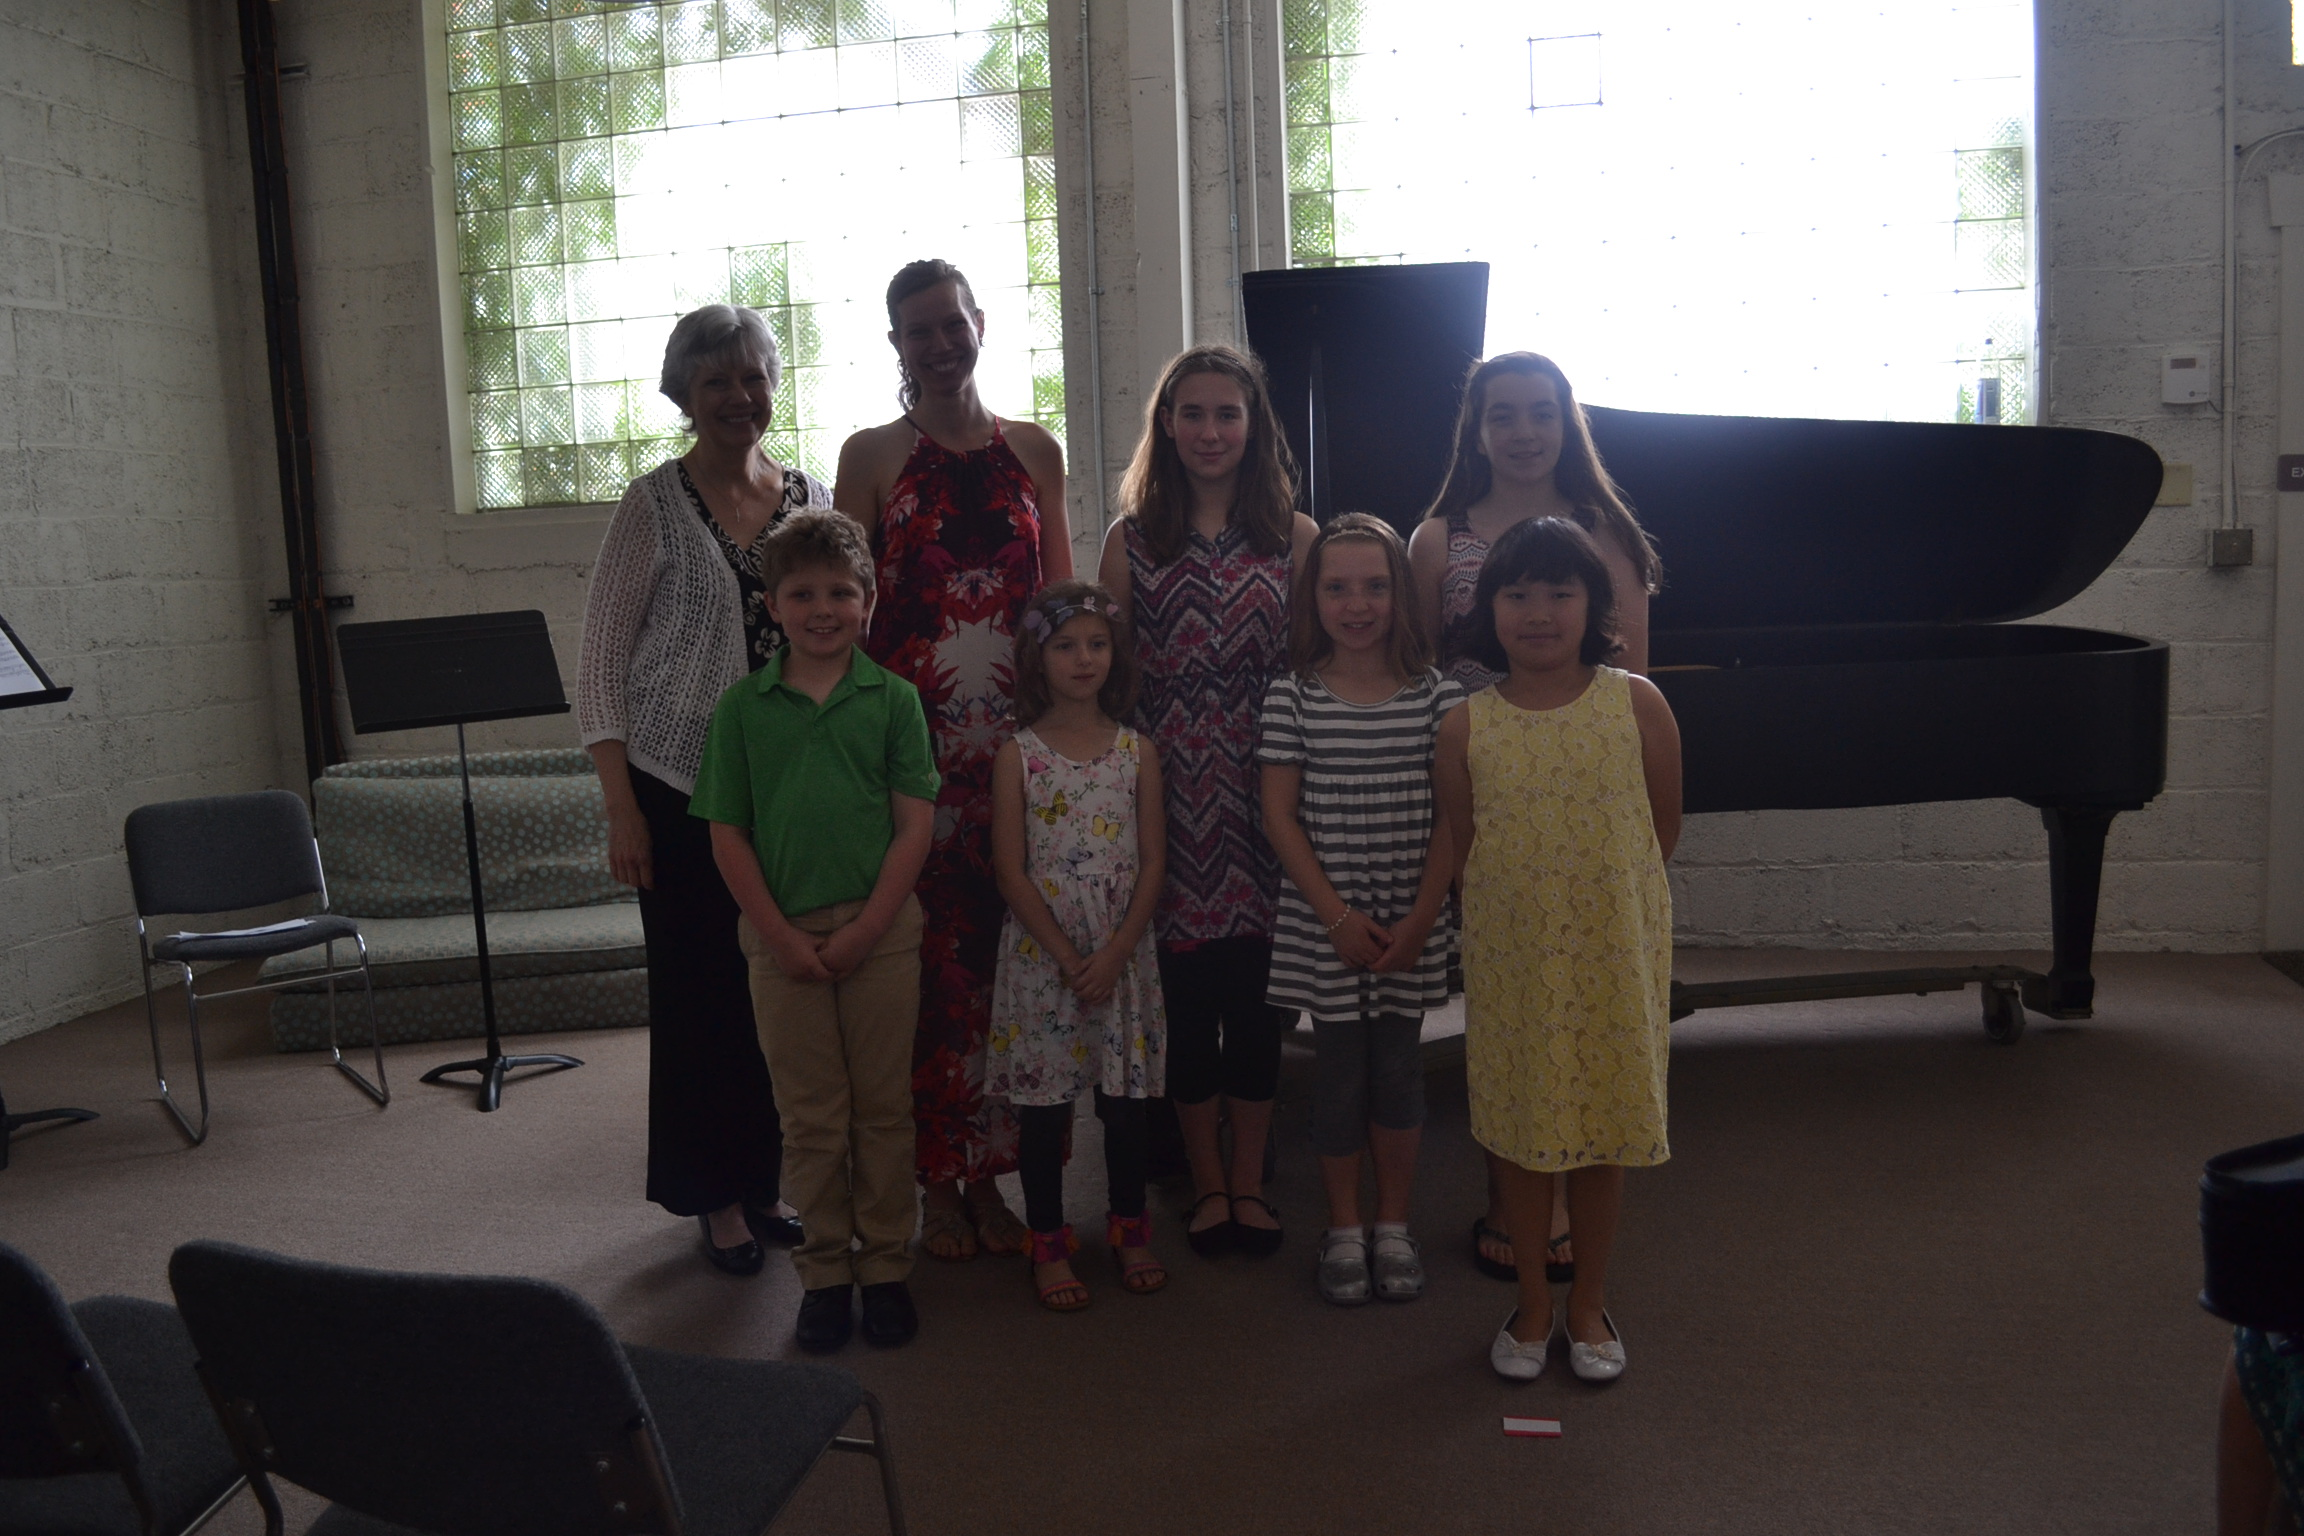 Performers at Ms. Elisabeth's Community Concert